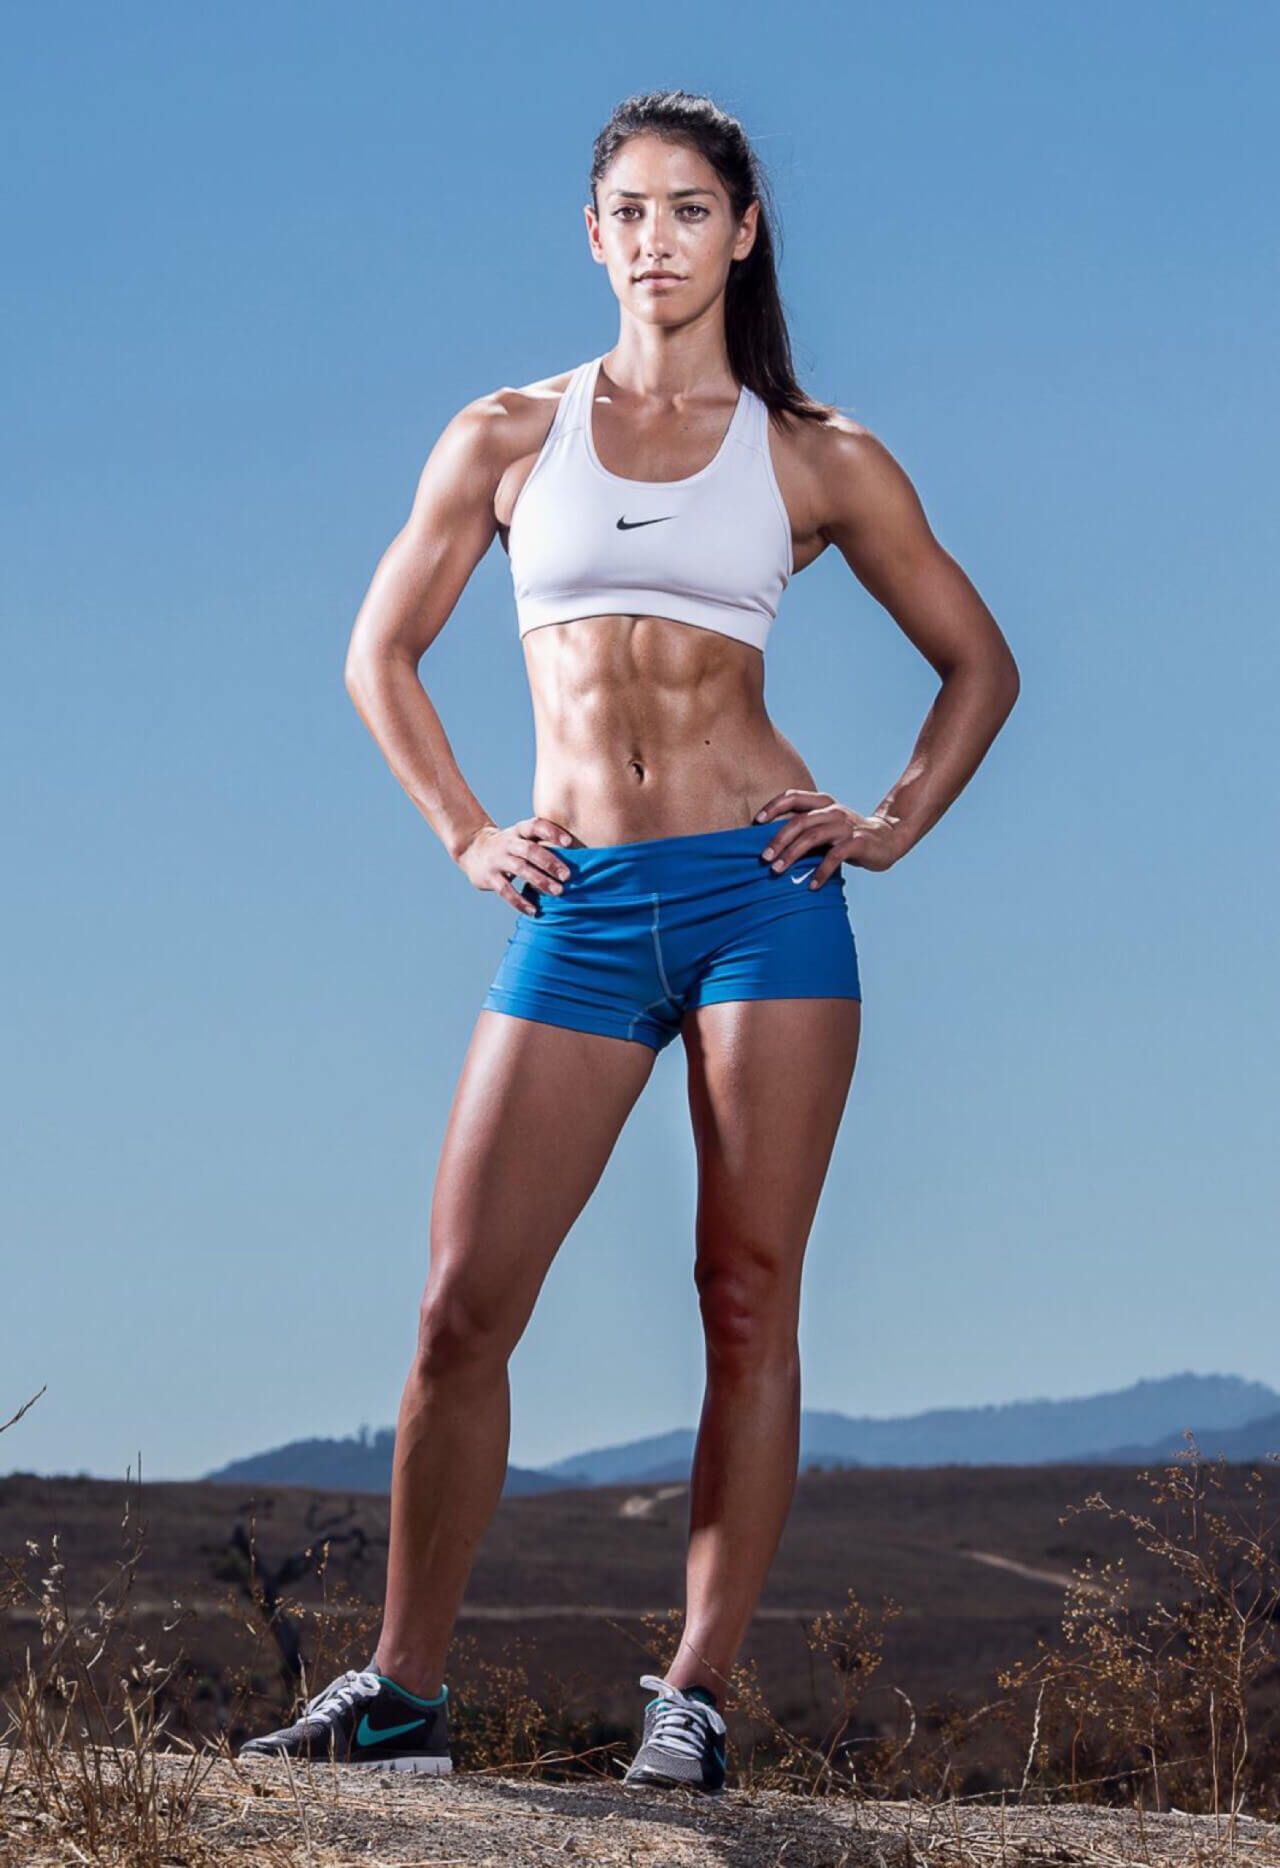 Allison Stokke thigh pic